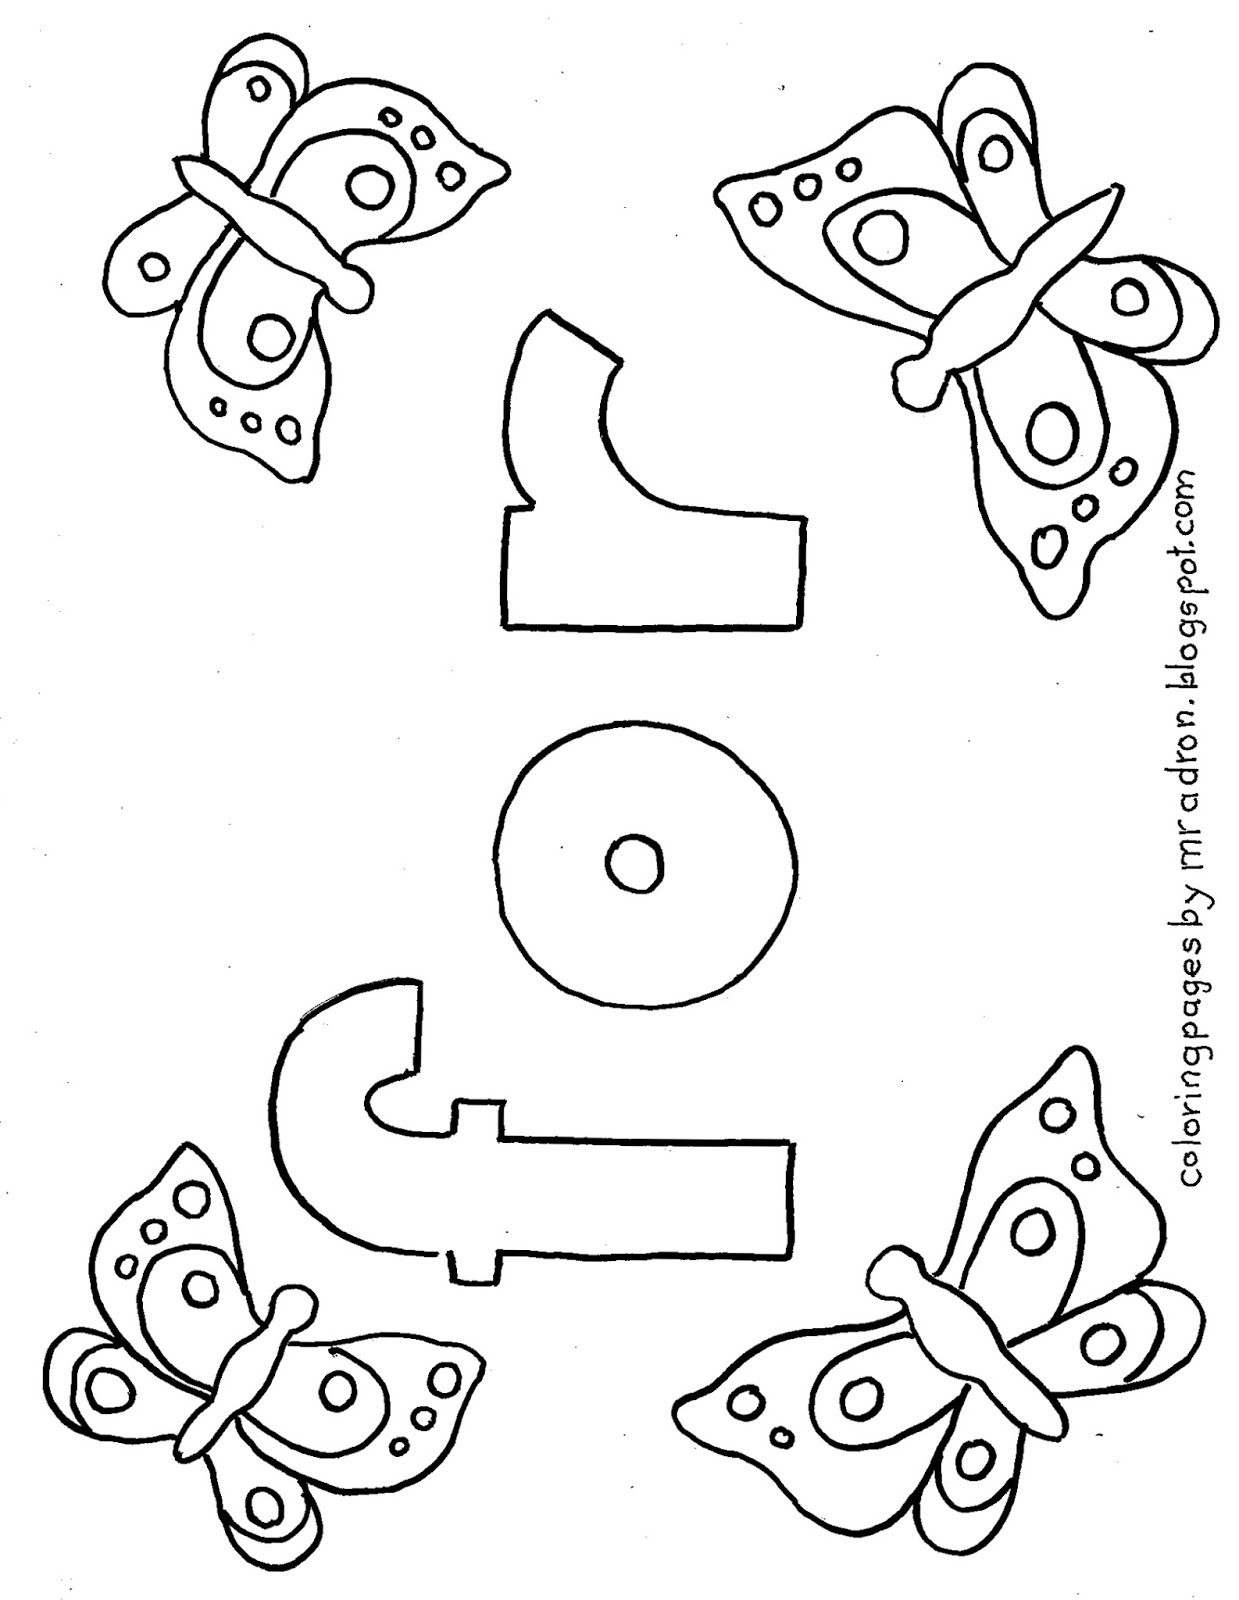 Coloring pages for kids by mr adron printable coloring for Sight word coloring pages printable